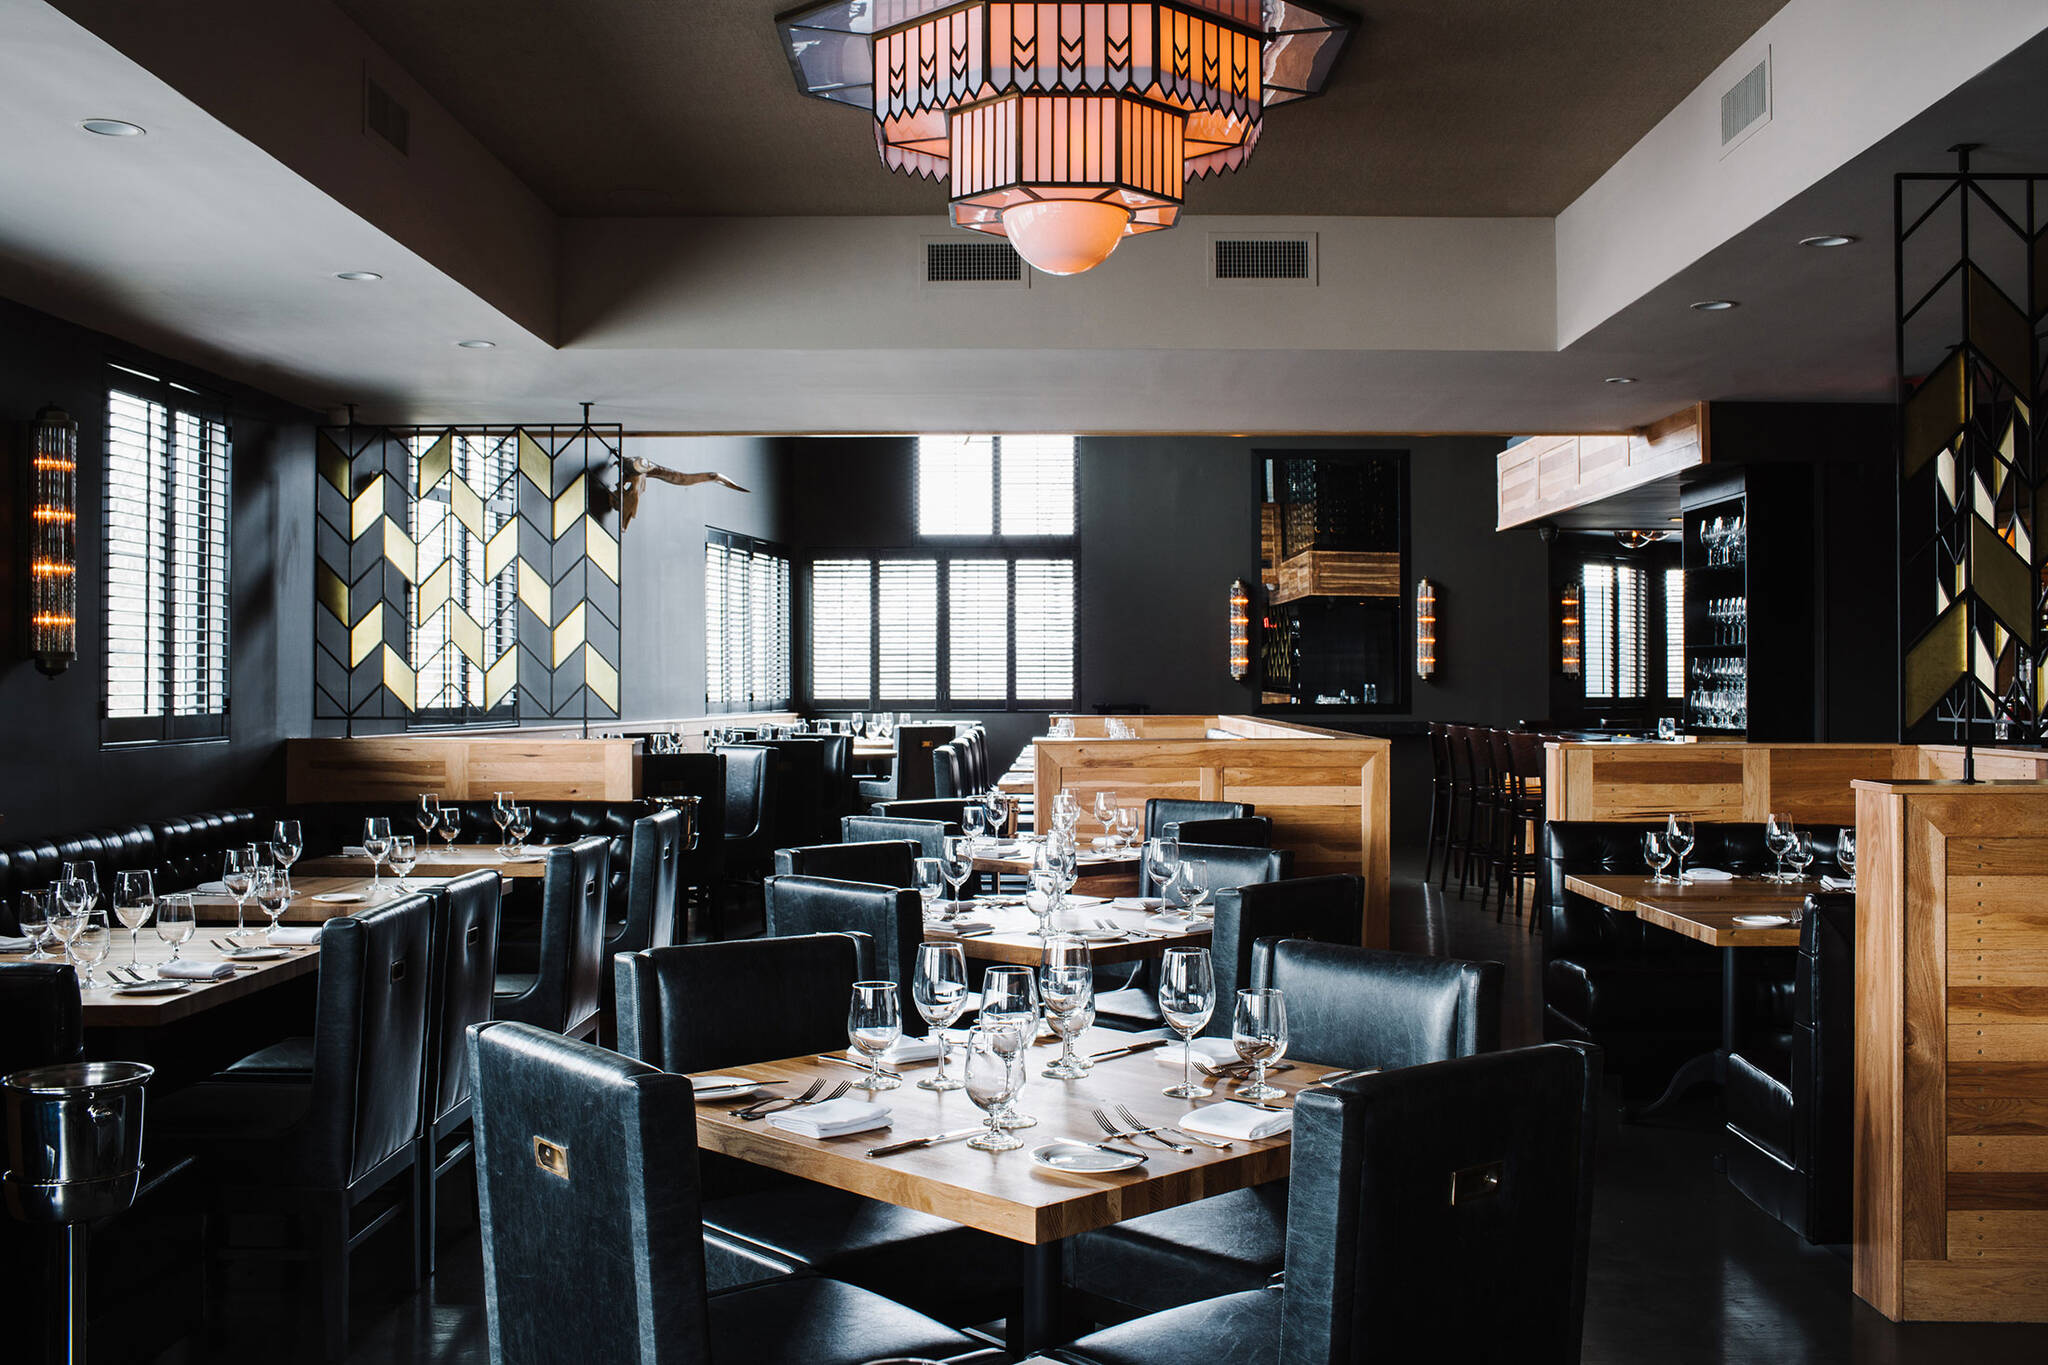 Intimate dining area of the American Cut Bar & Grill project located at 495 Sylvan Avenue in Englewood Cliffs, New Jersey designed by the architecture studio Danny Forster & Architecture